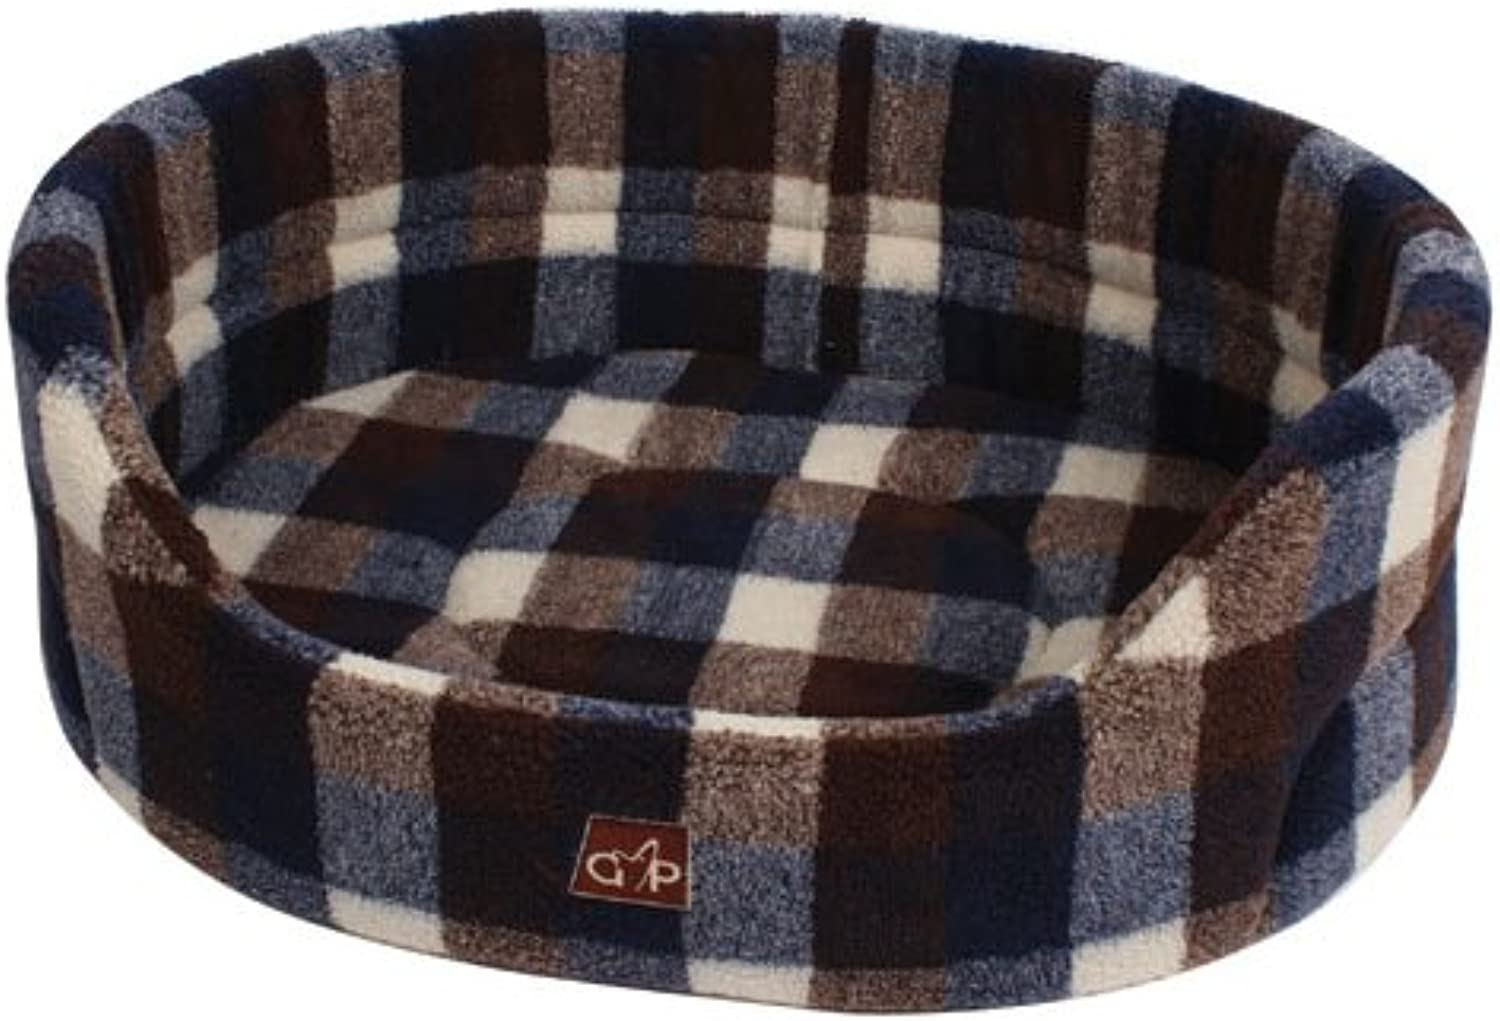 Gor Pets Highland Bed Washable Comfortable Dog Bed, 28inch, Autumn Check